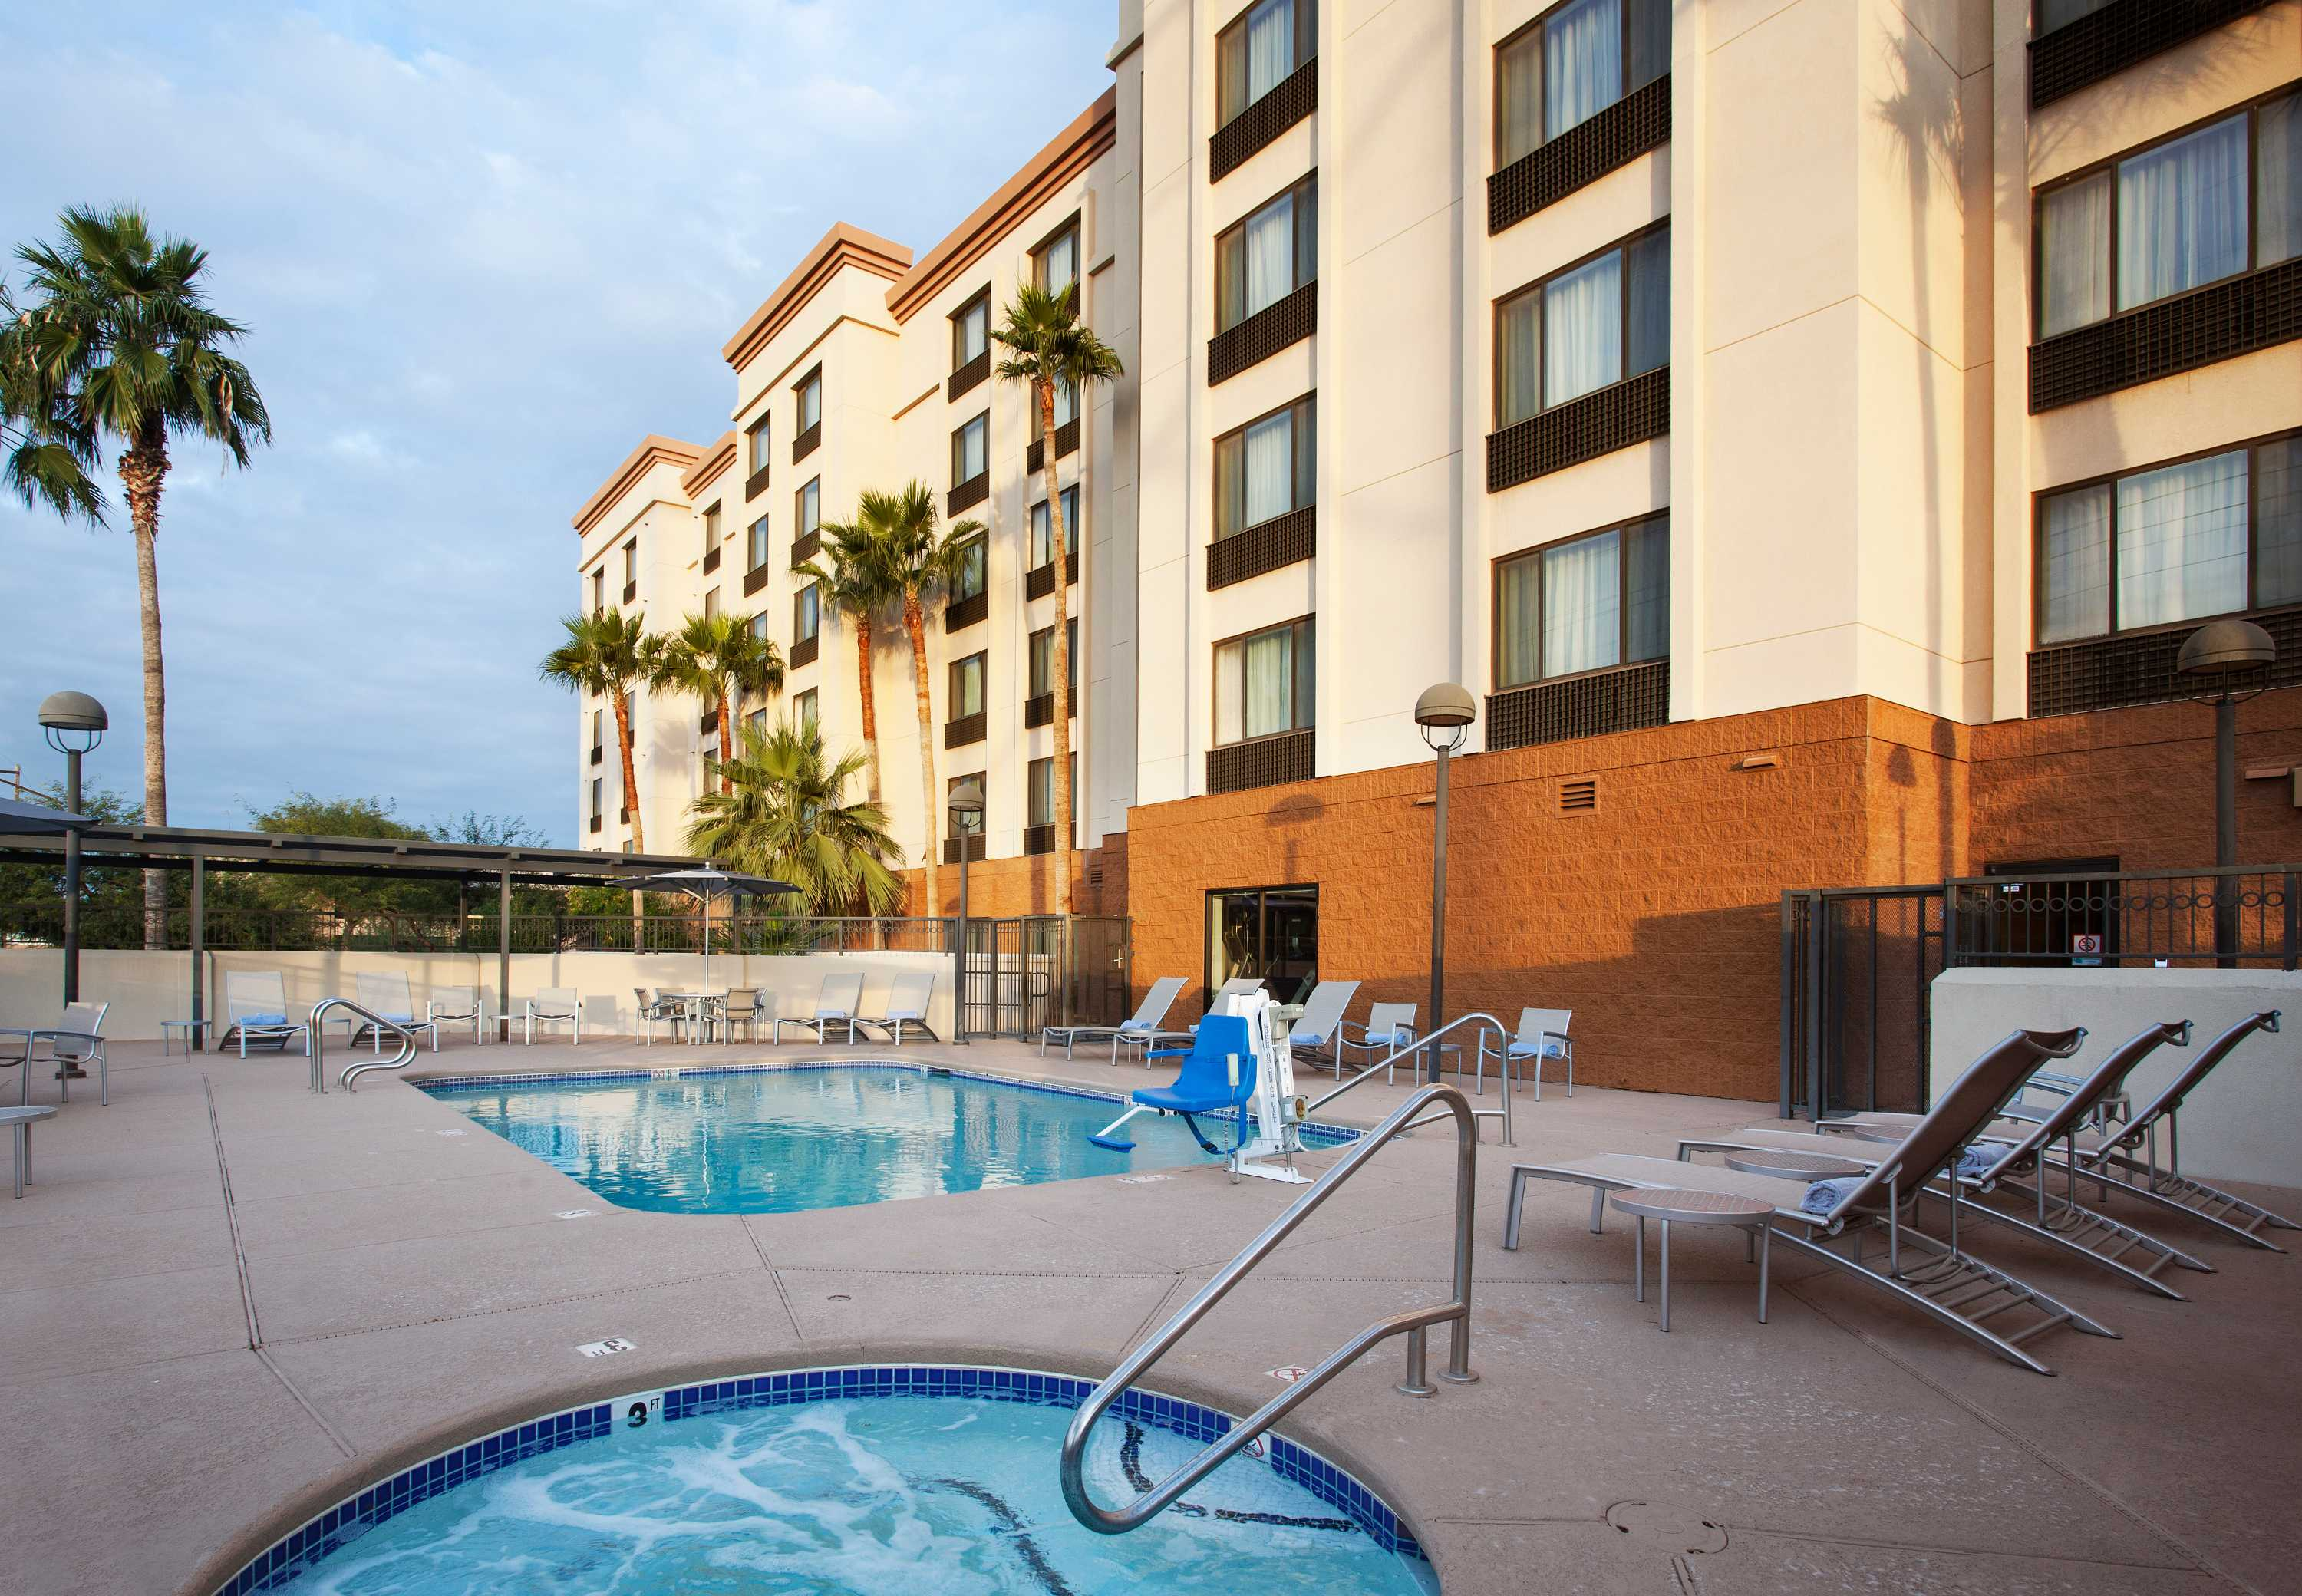 SpringHill Suites by Marriott Phoenix Tempe/Airport image 12